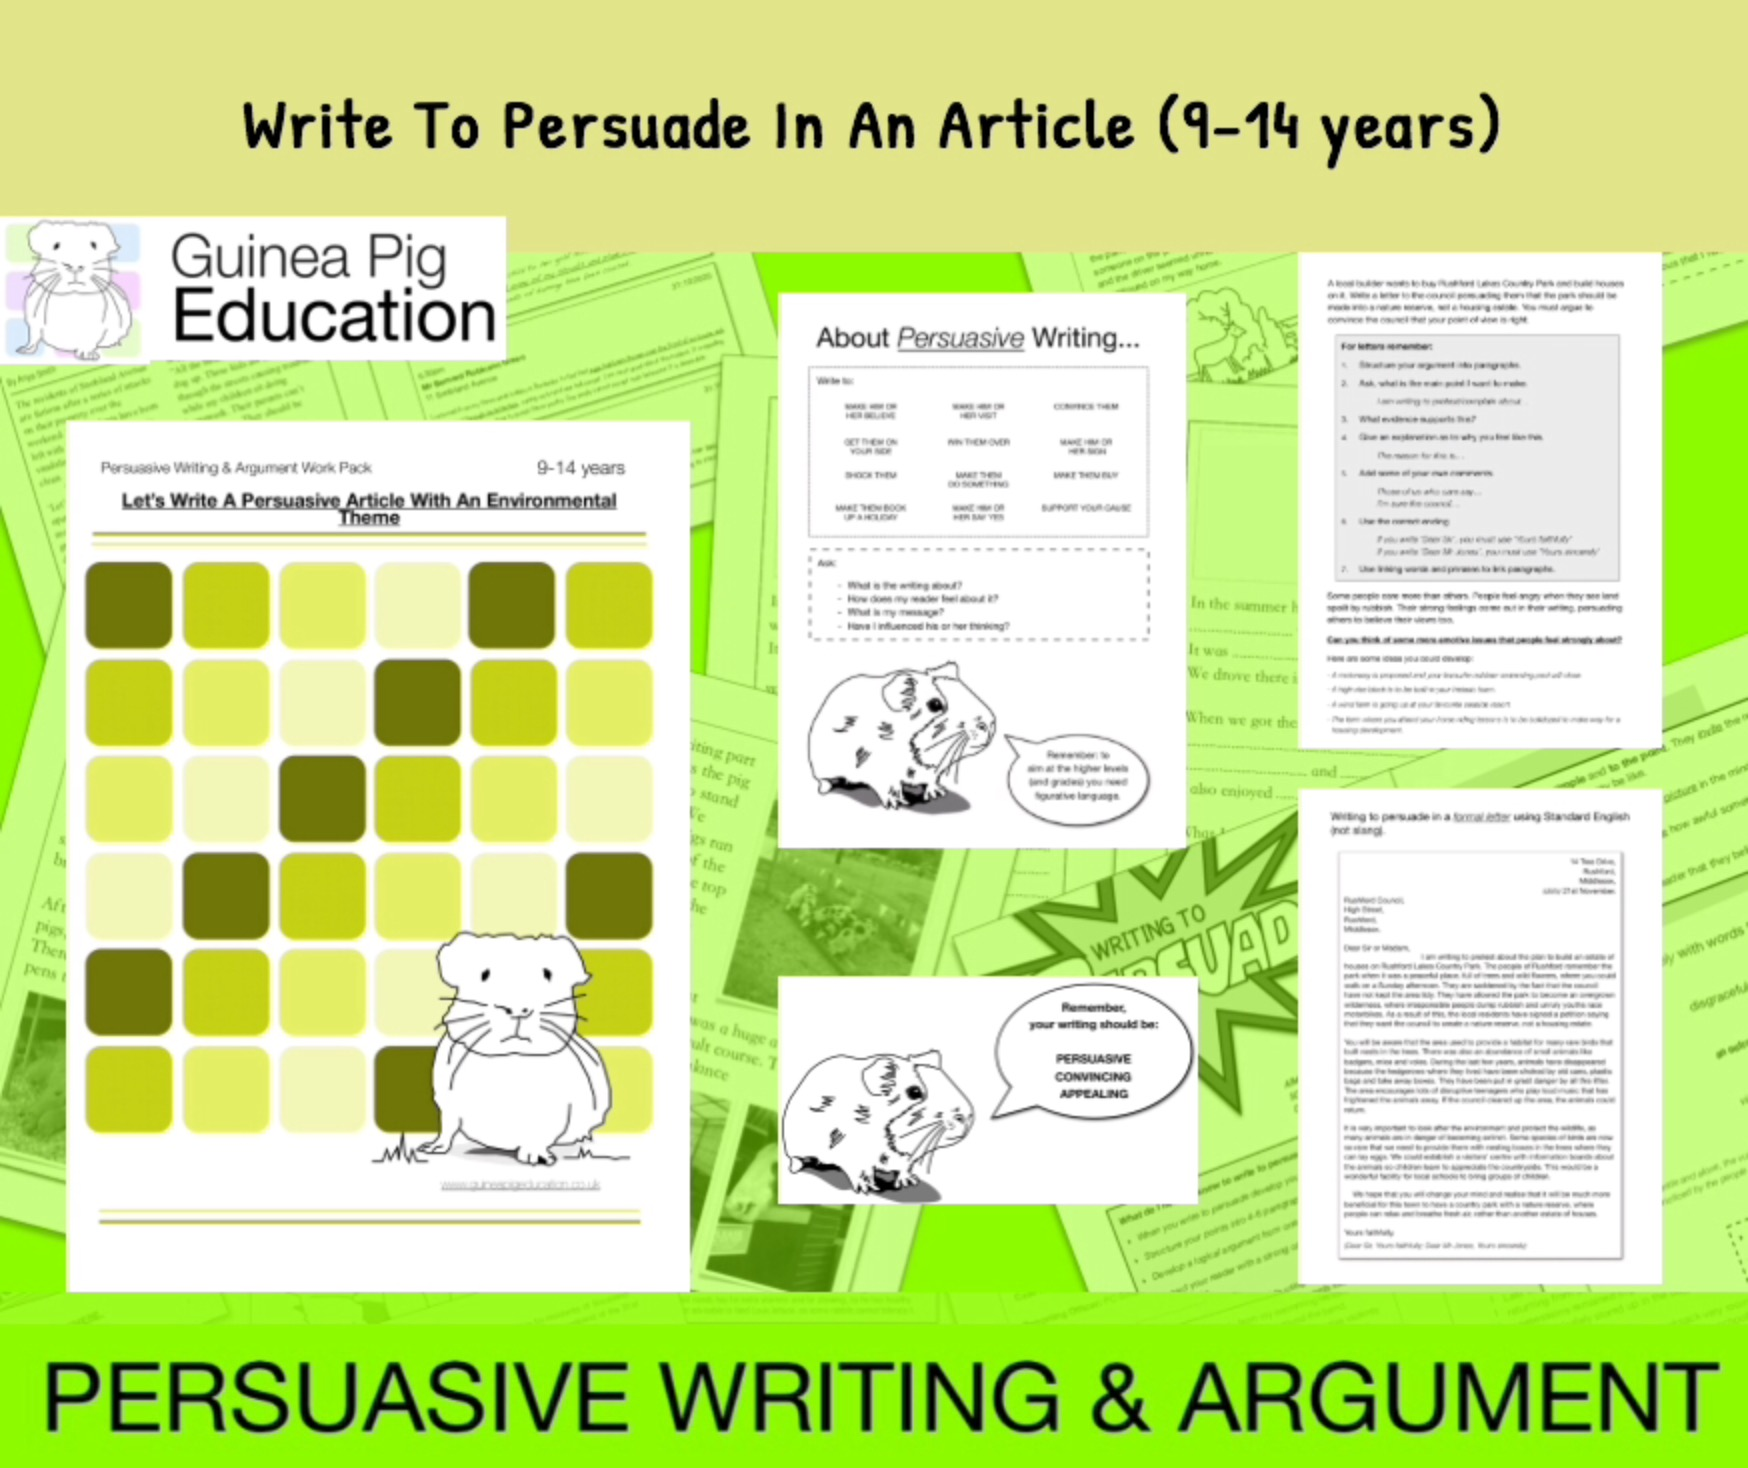 How To Write A Persuasive Article (with an environmental theme) (9-14 years)